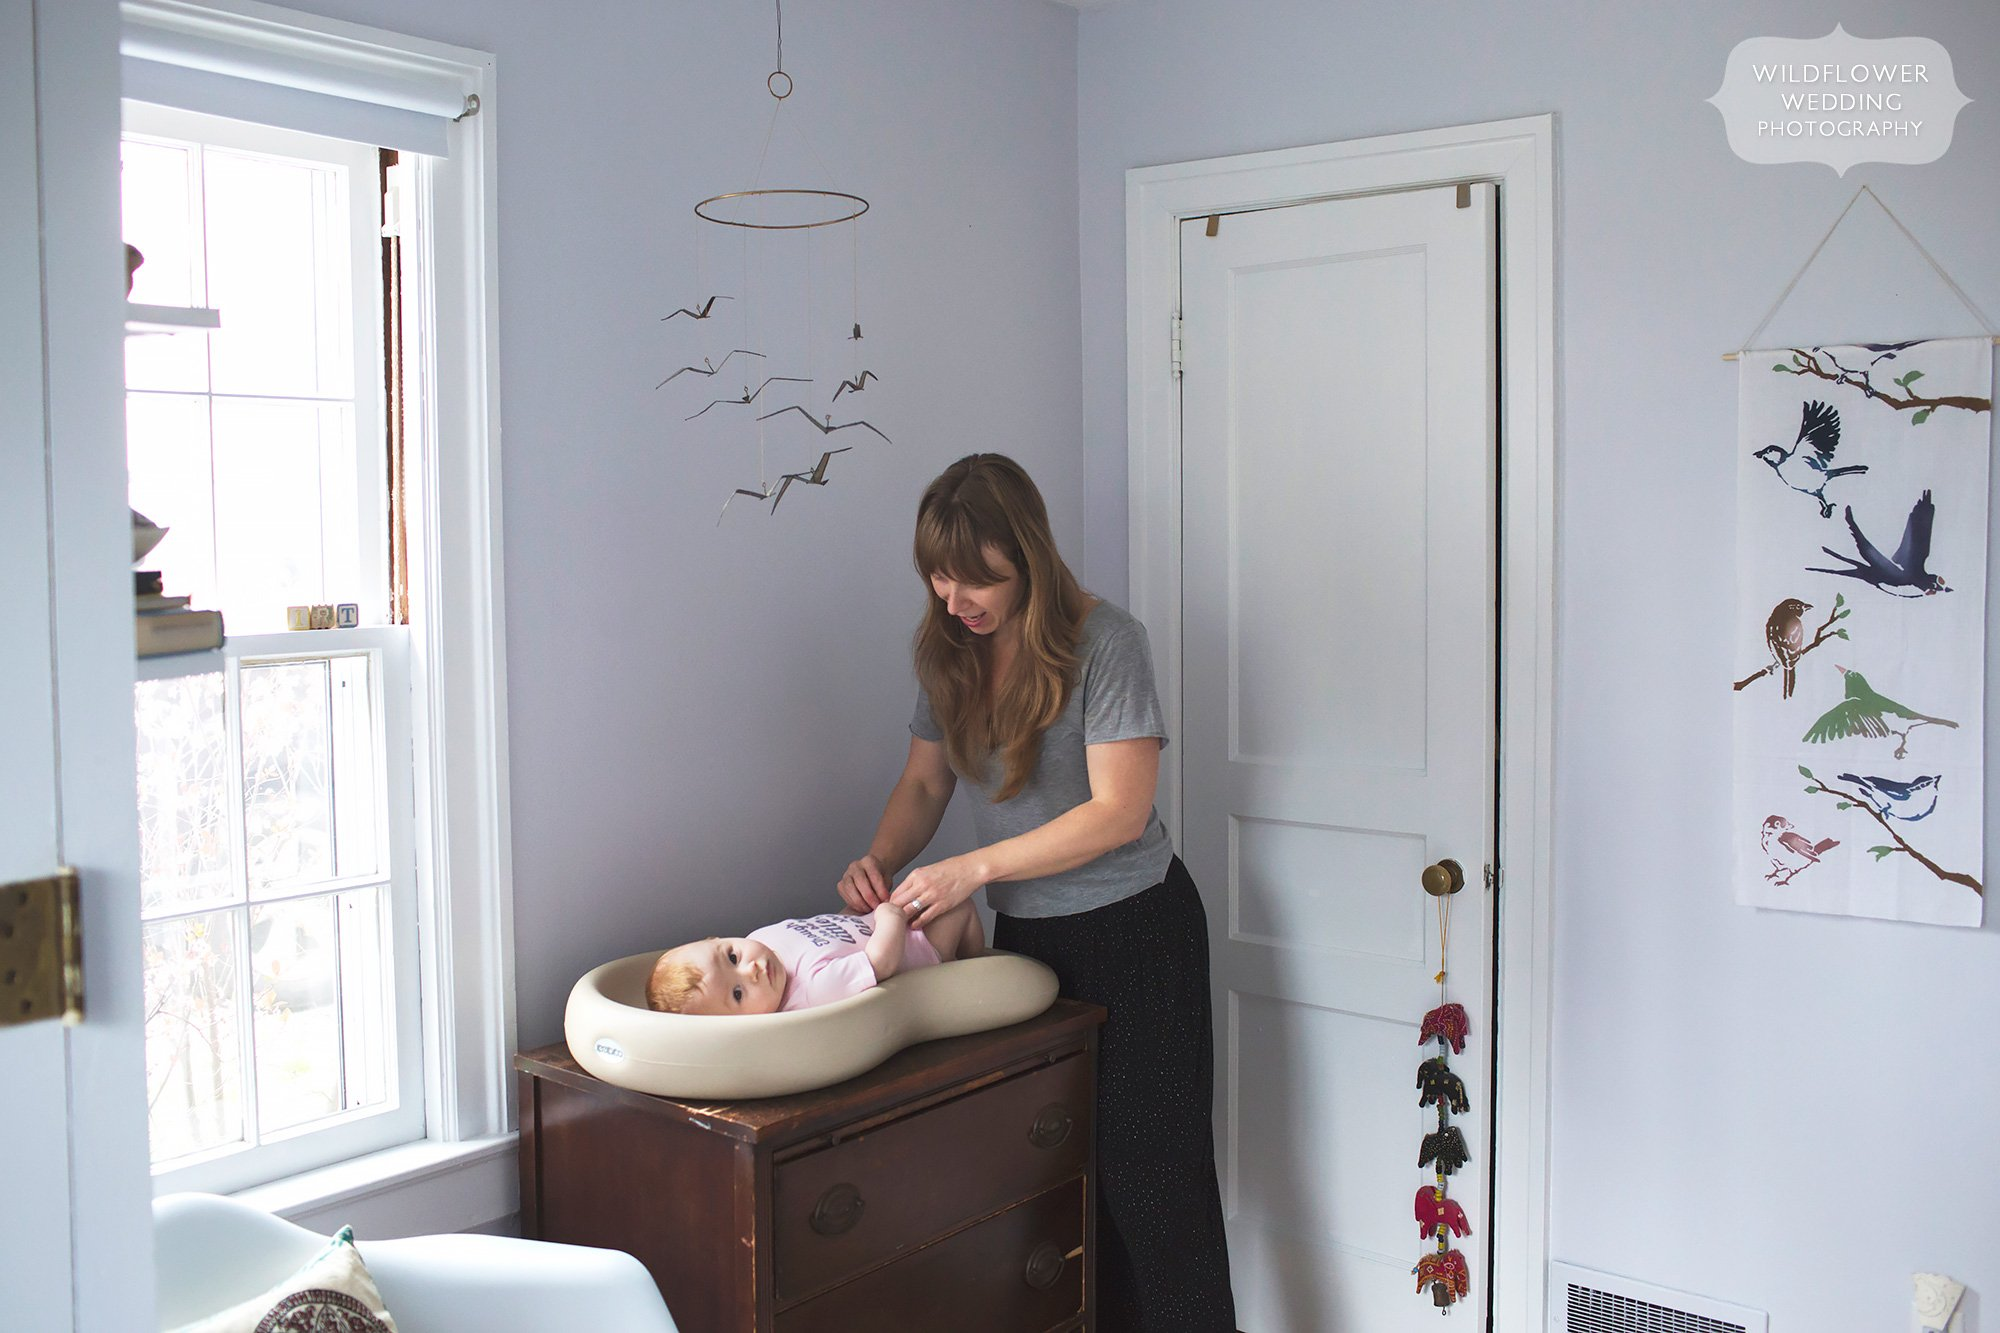 Candid photo of mother changing baby's diaper on Keekaroo Peanut at home during photo shoot in MO.